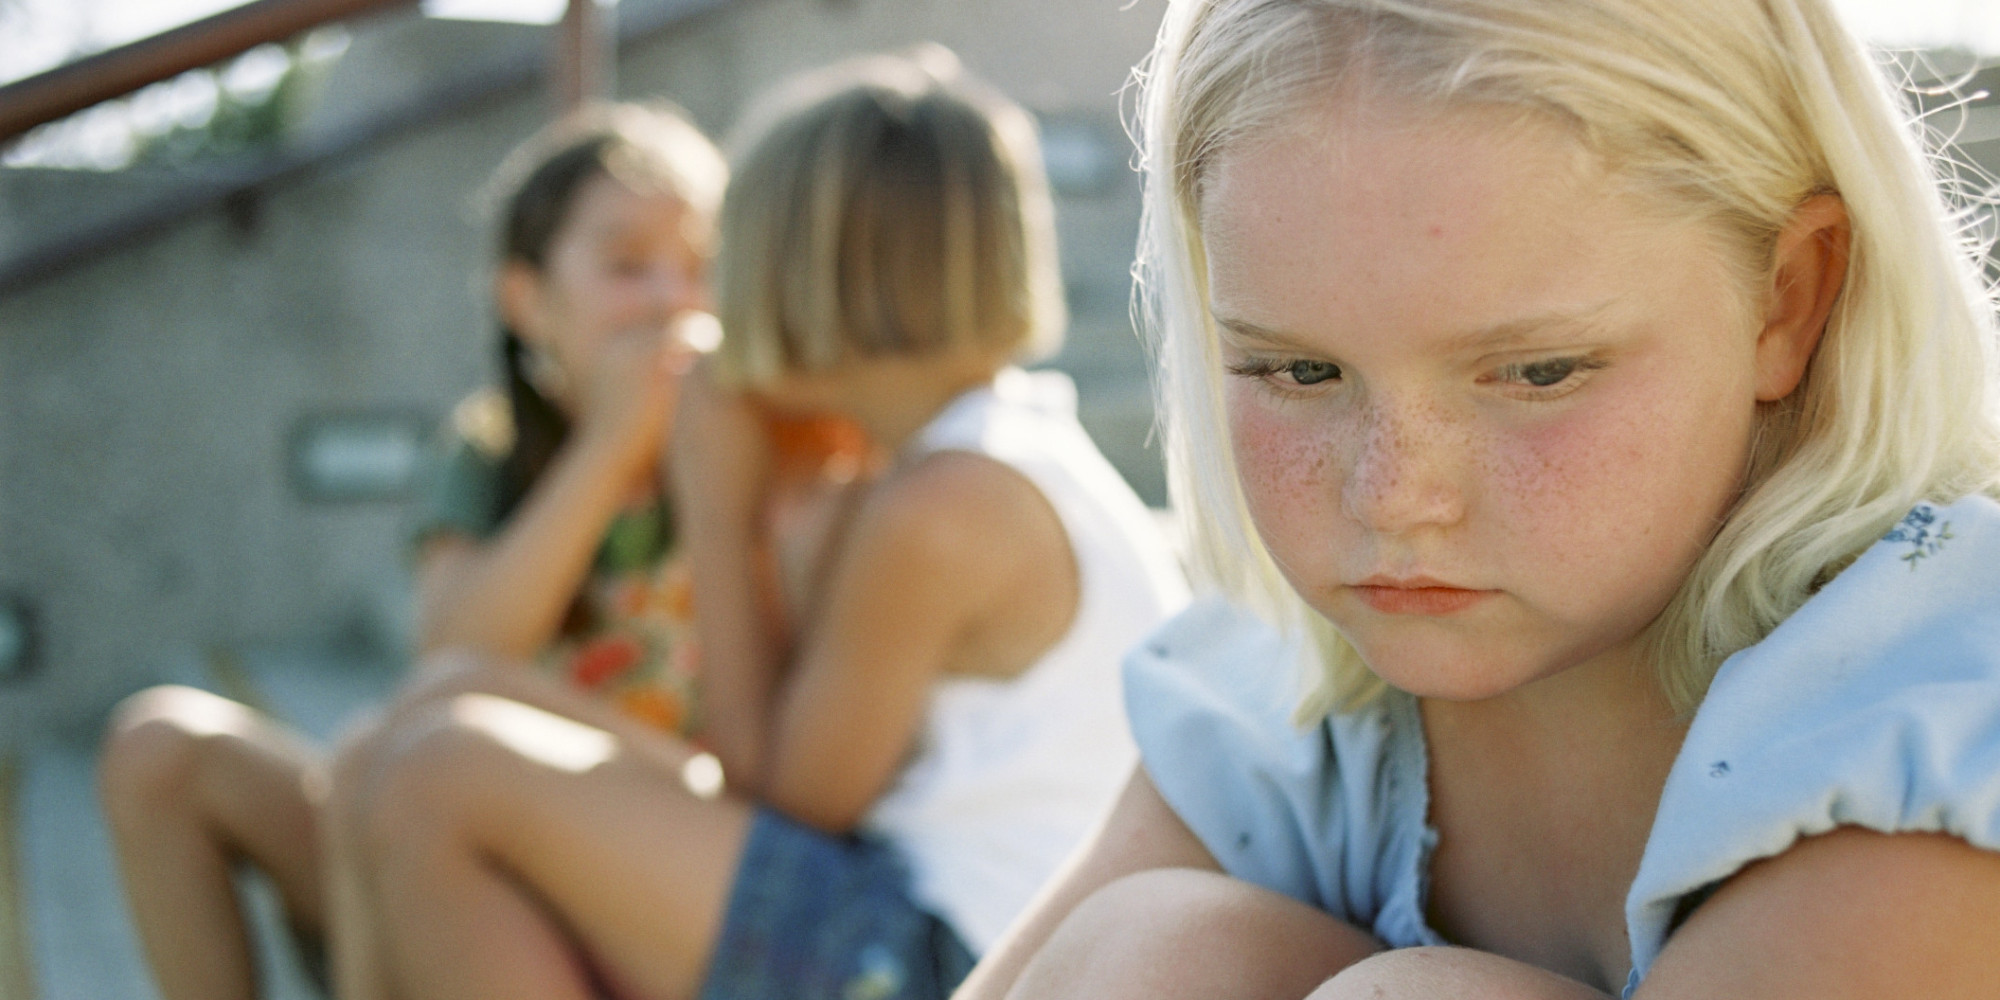 Rude vs. Mean vs. Bullying: Defining the Differences